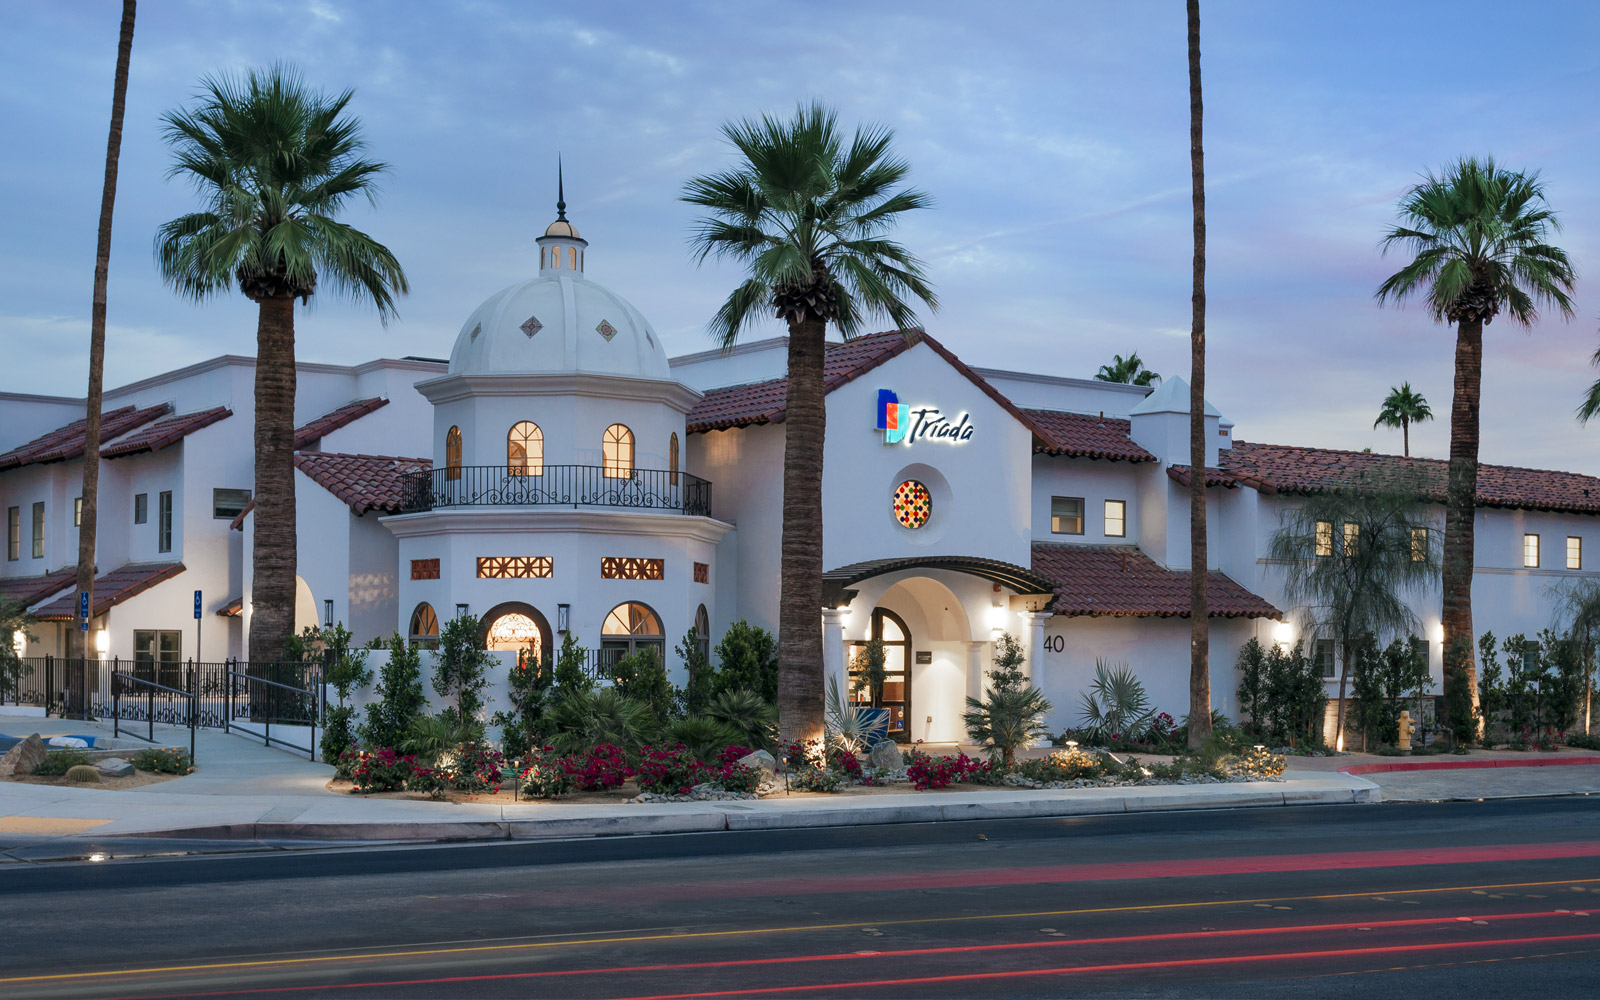 Explore Our Palm Springs, CA Hotel - Triada Palm Springs on